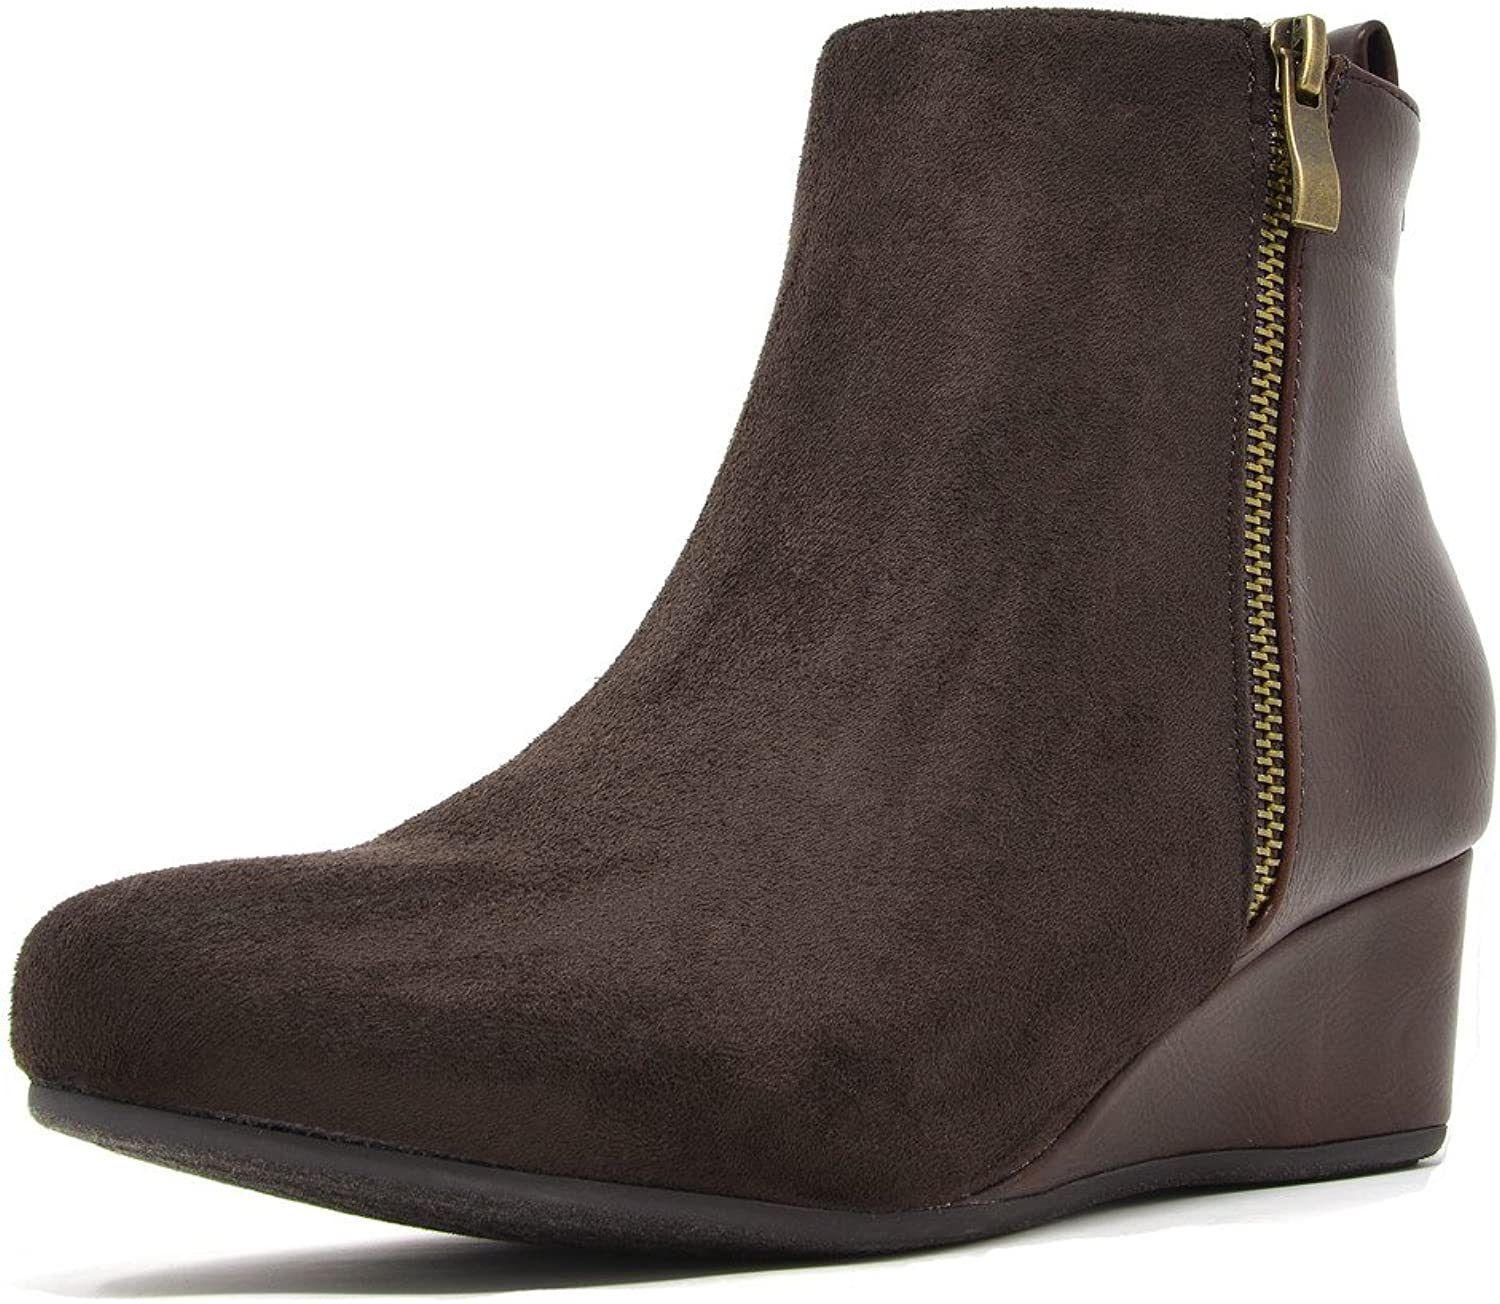 DREAM PAIRS Women's Cinq Low Wedge Heel Ankle Boots